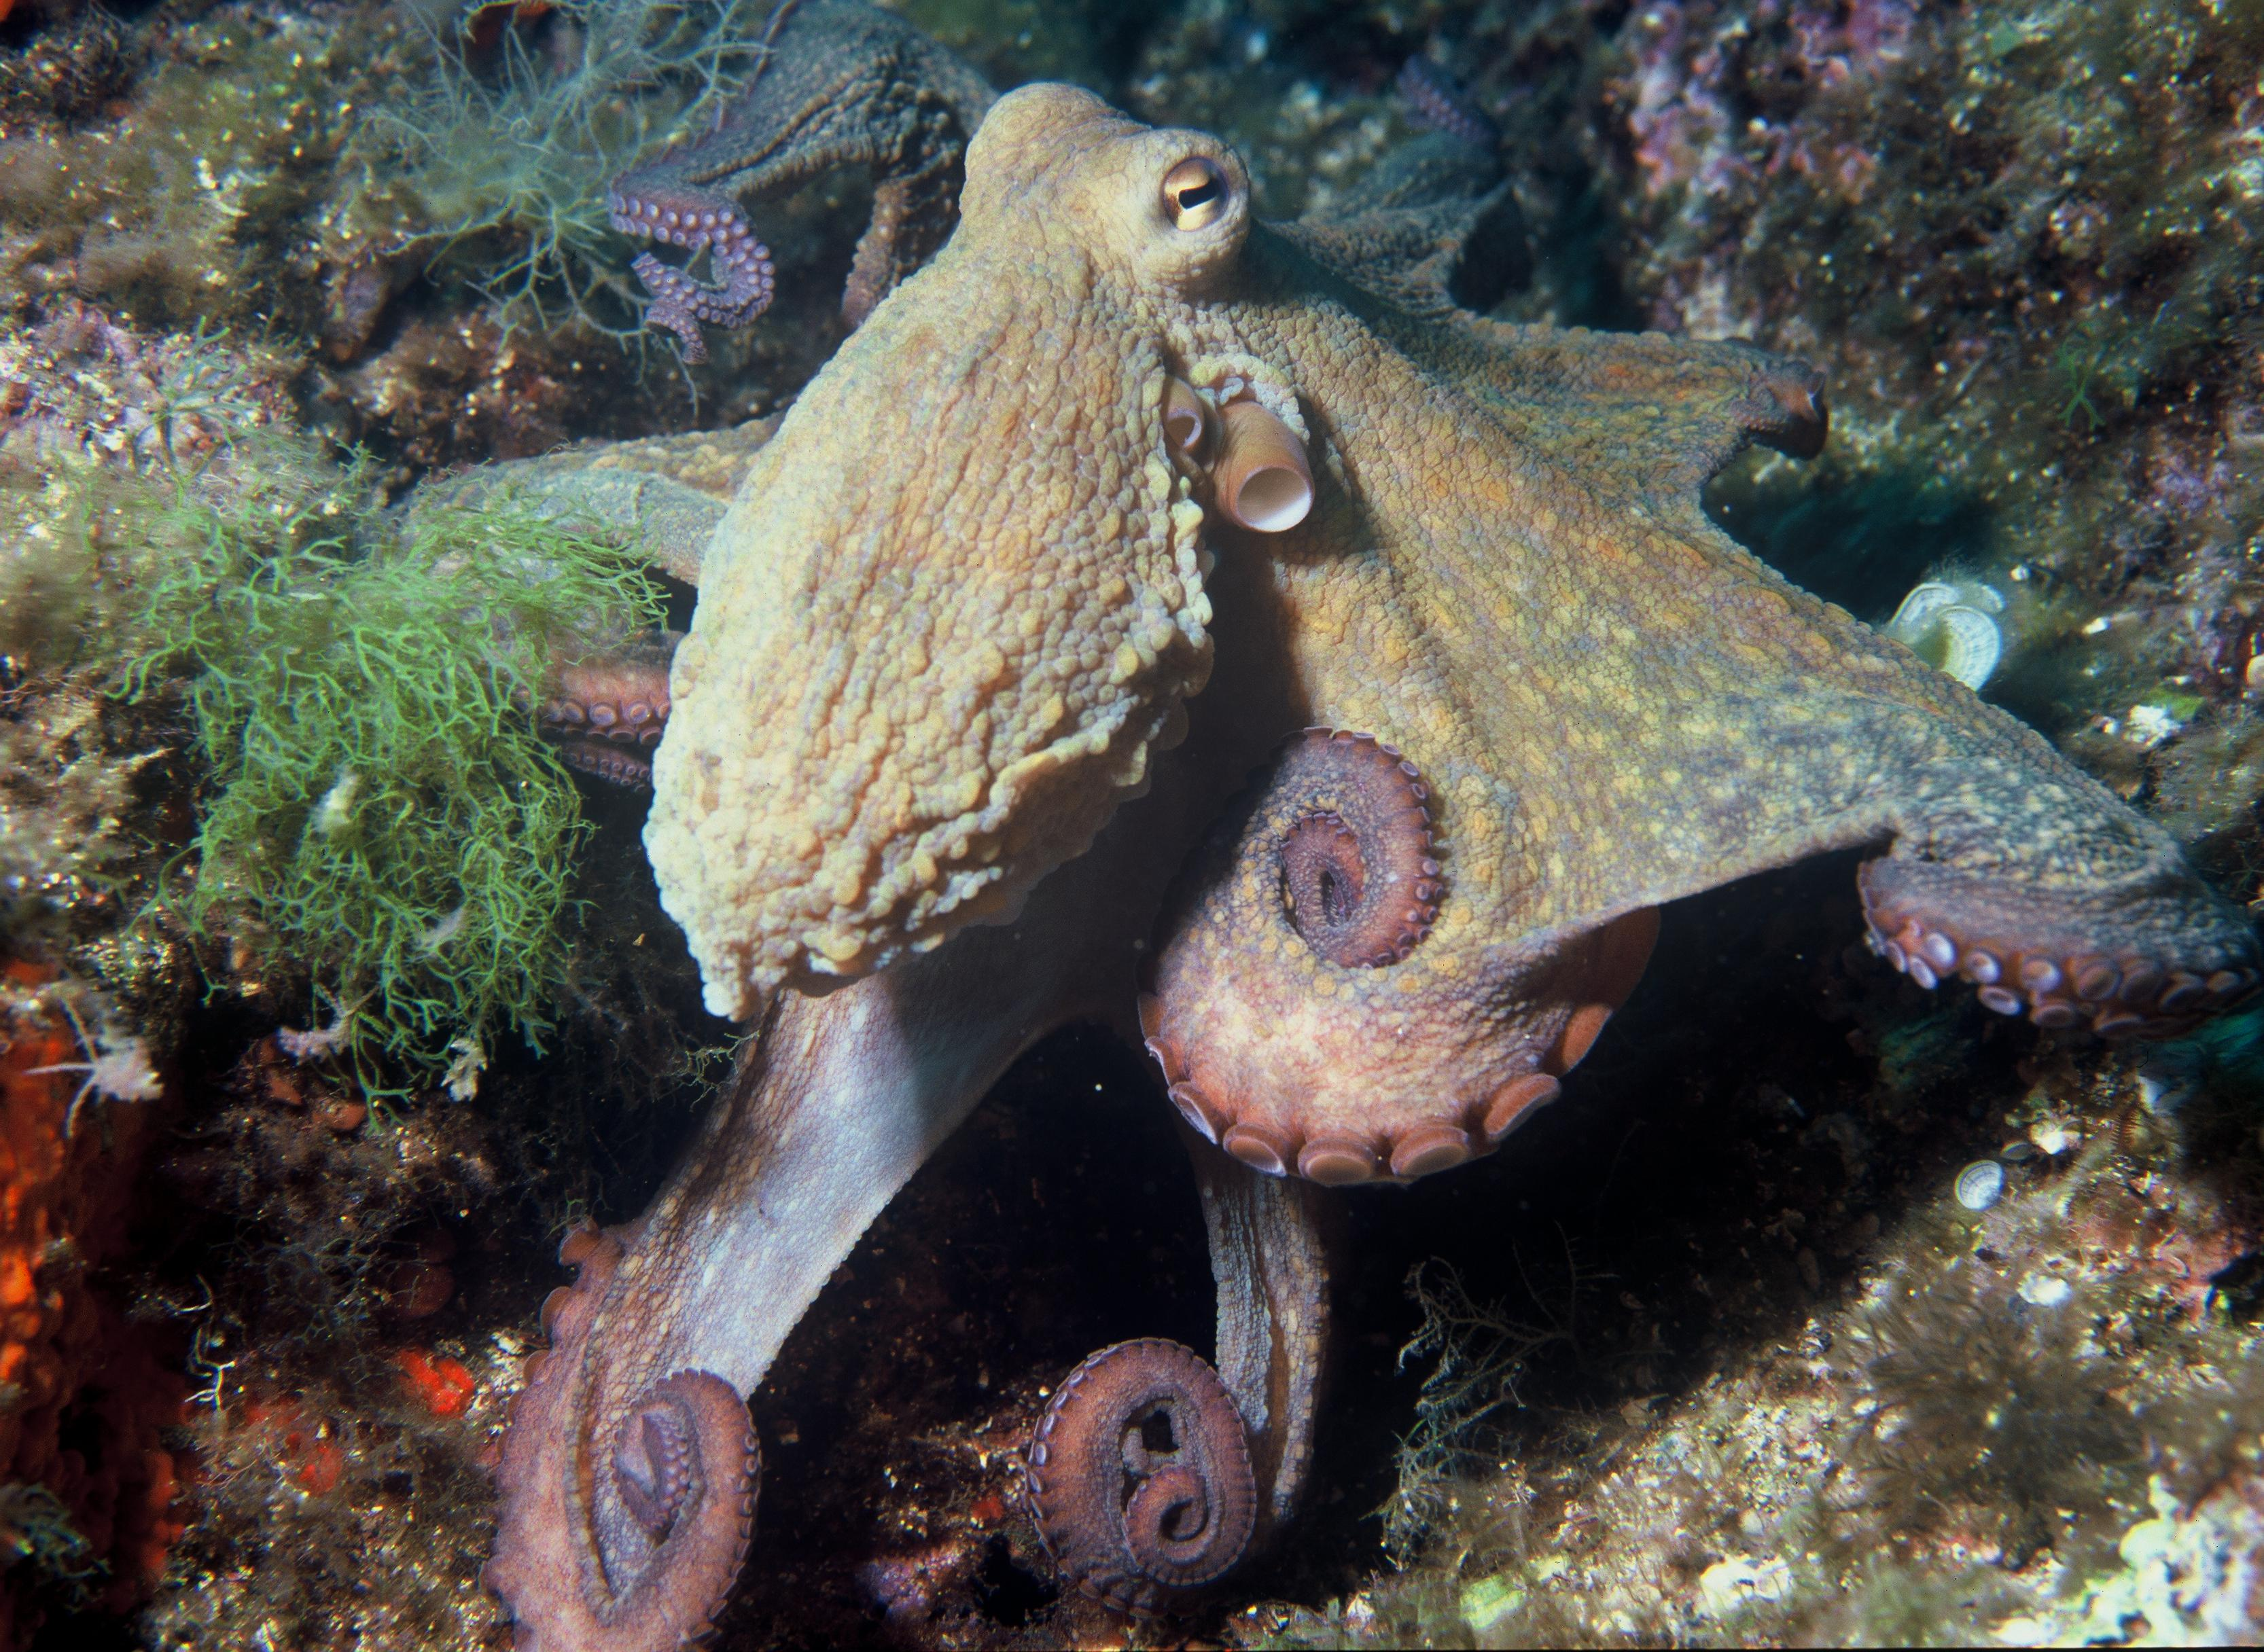 https://upload.wikimedia.org/wikipedia/commons/9/9f/Octopus_vulgaris_2.jpg